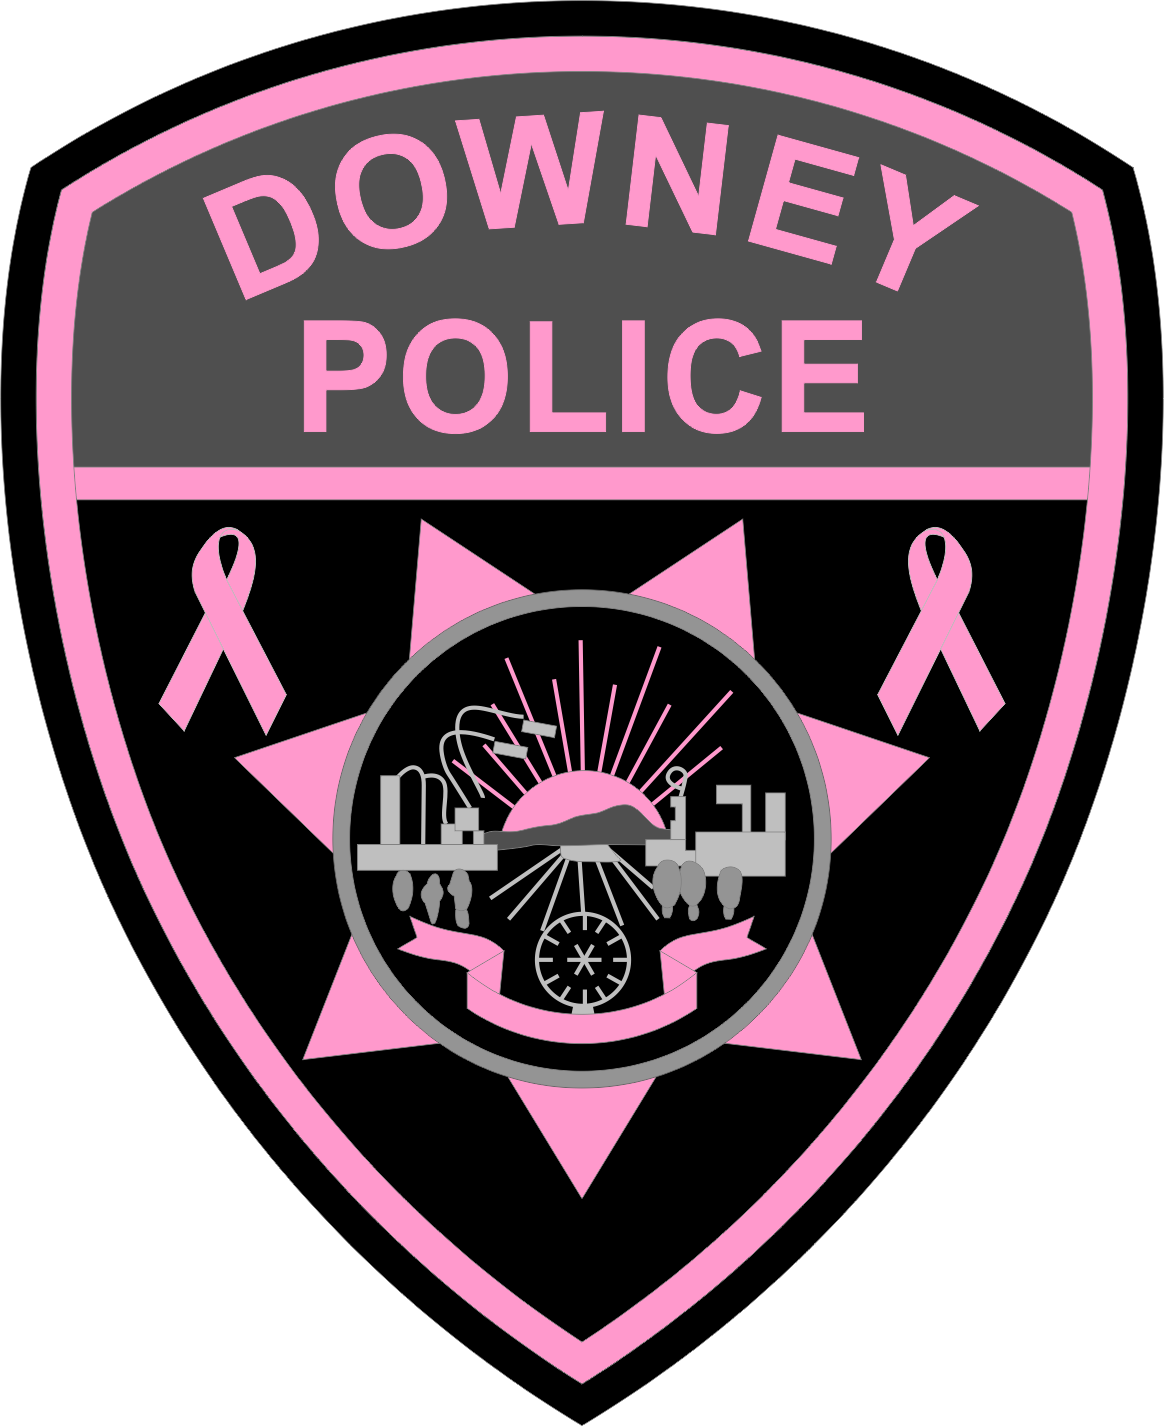 Downey Police (CA) - PINK PATCH 2016.png